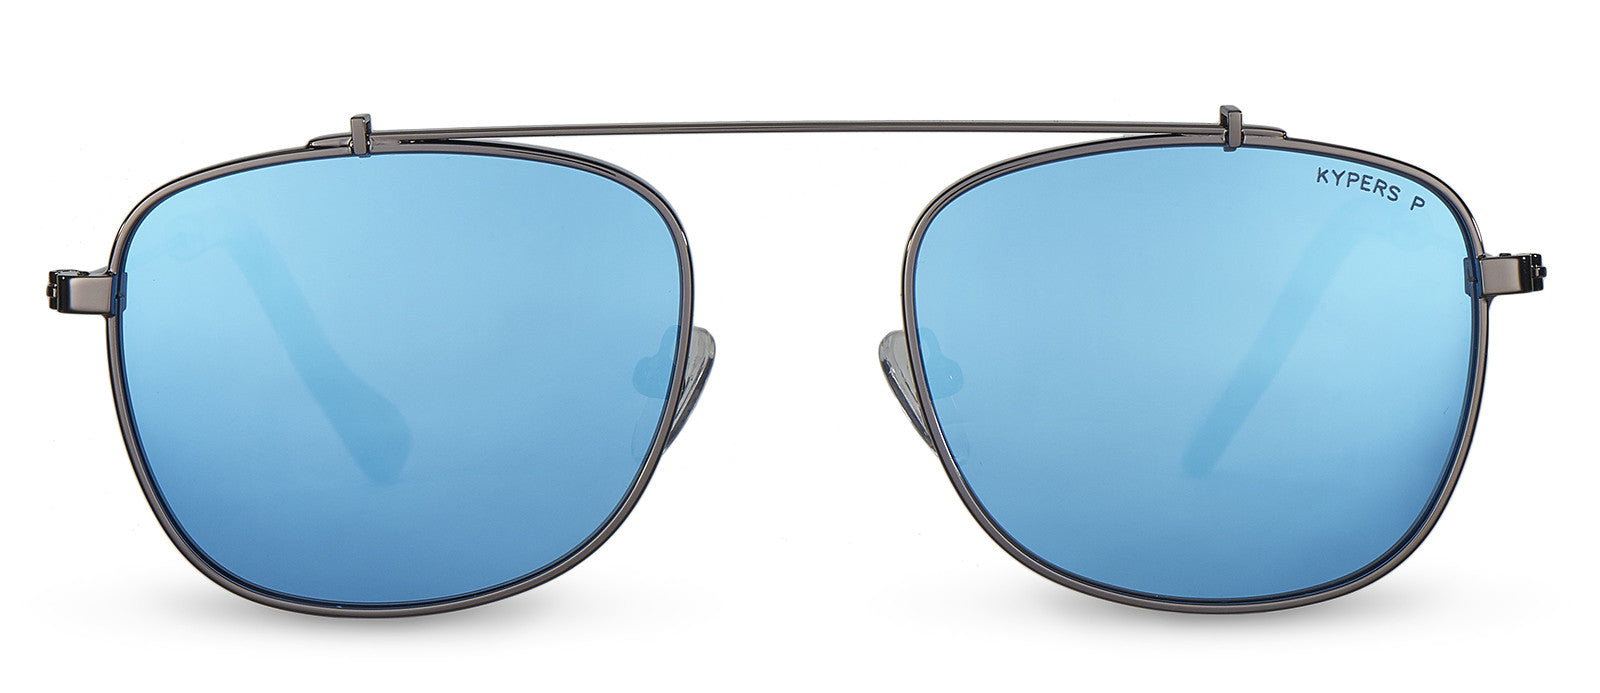 KYPERS sunglasses model ROB RB004 with silver frame and blue revo lens